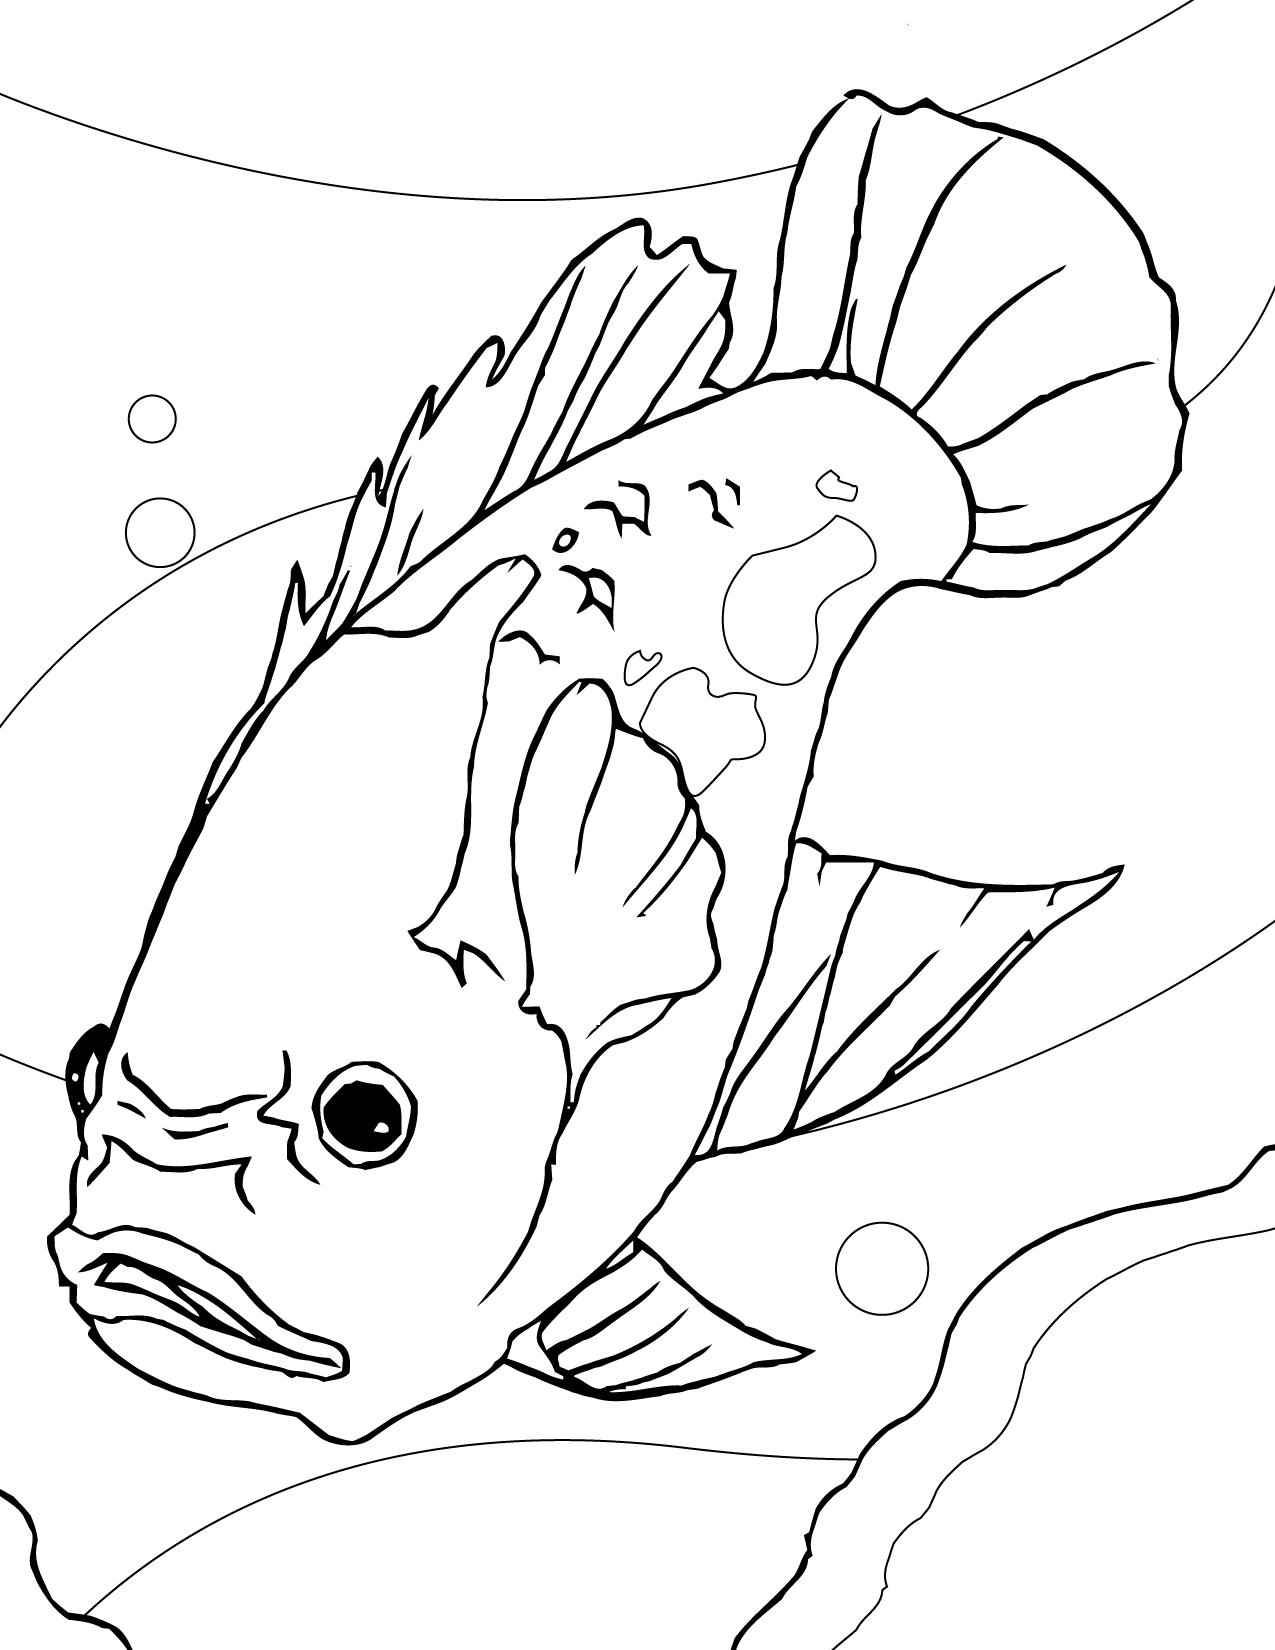 Oscar (Fish) coloring #6, Download drawings